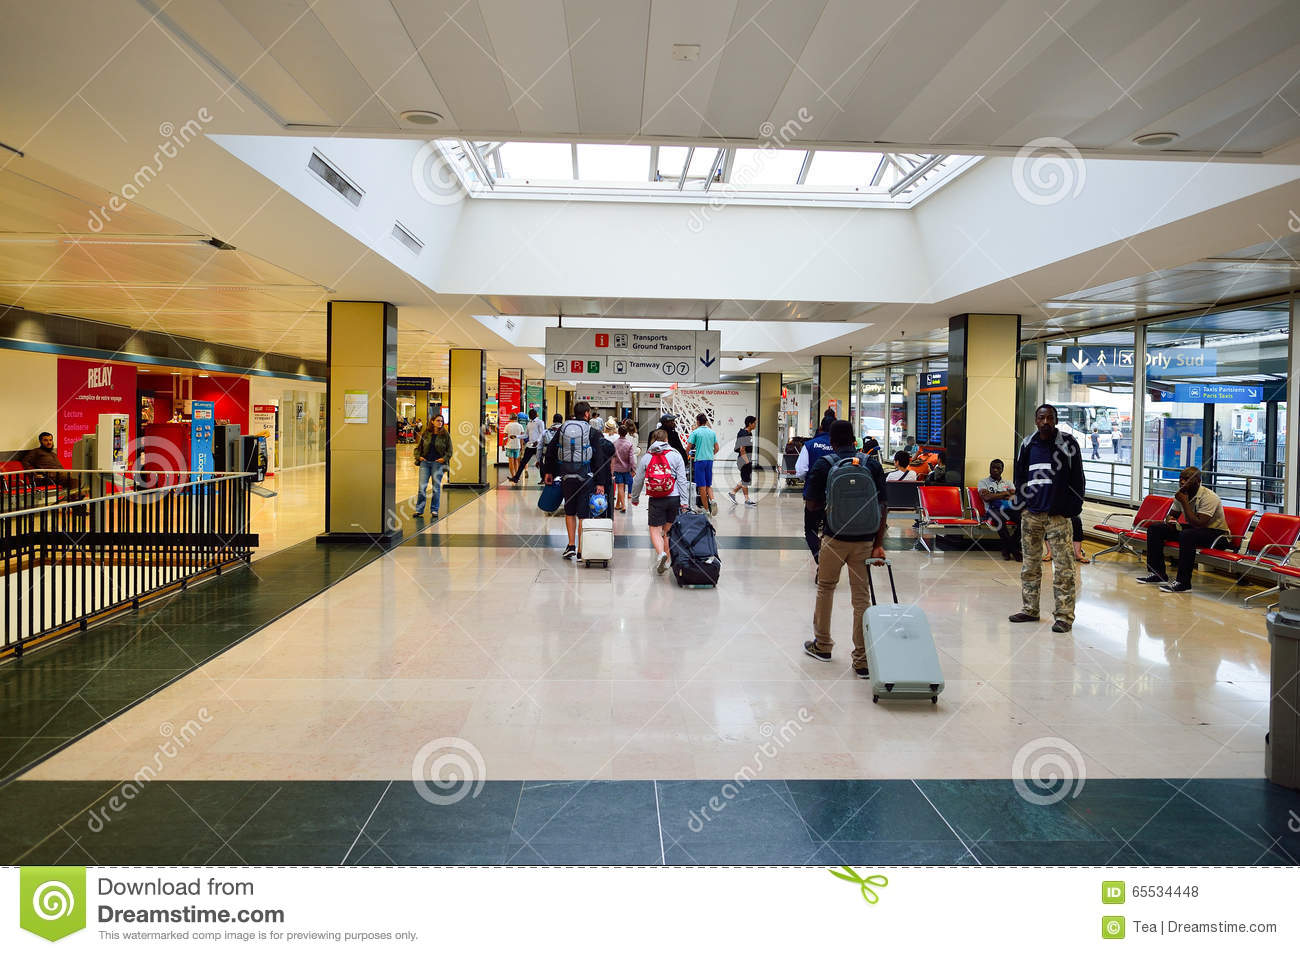 Aeroporto Orly : Orly airport editorial stock photo. image of airway passenger